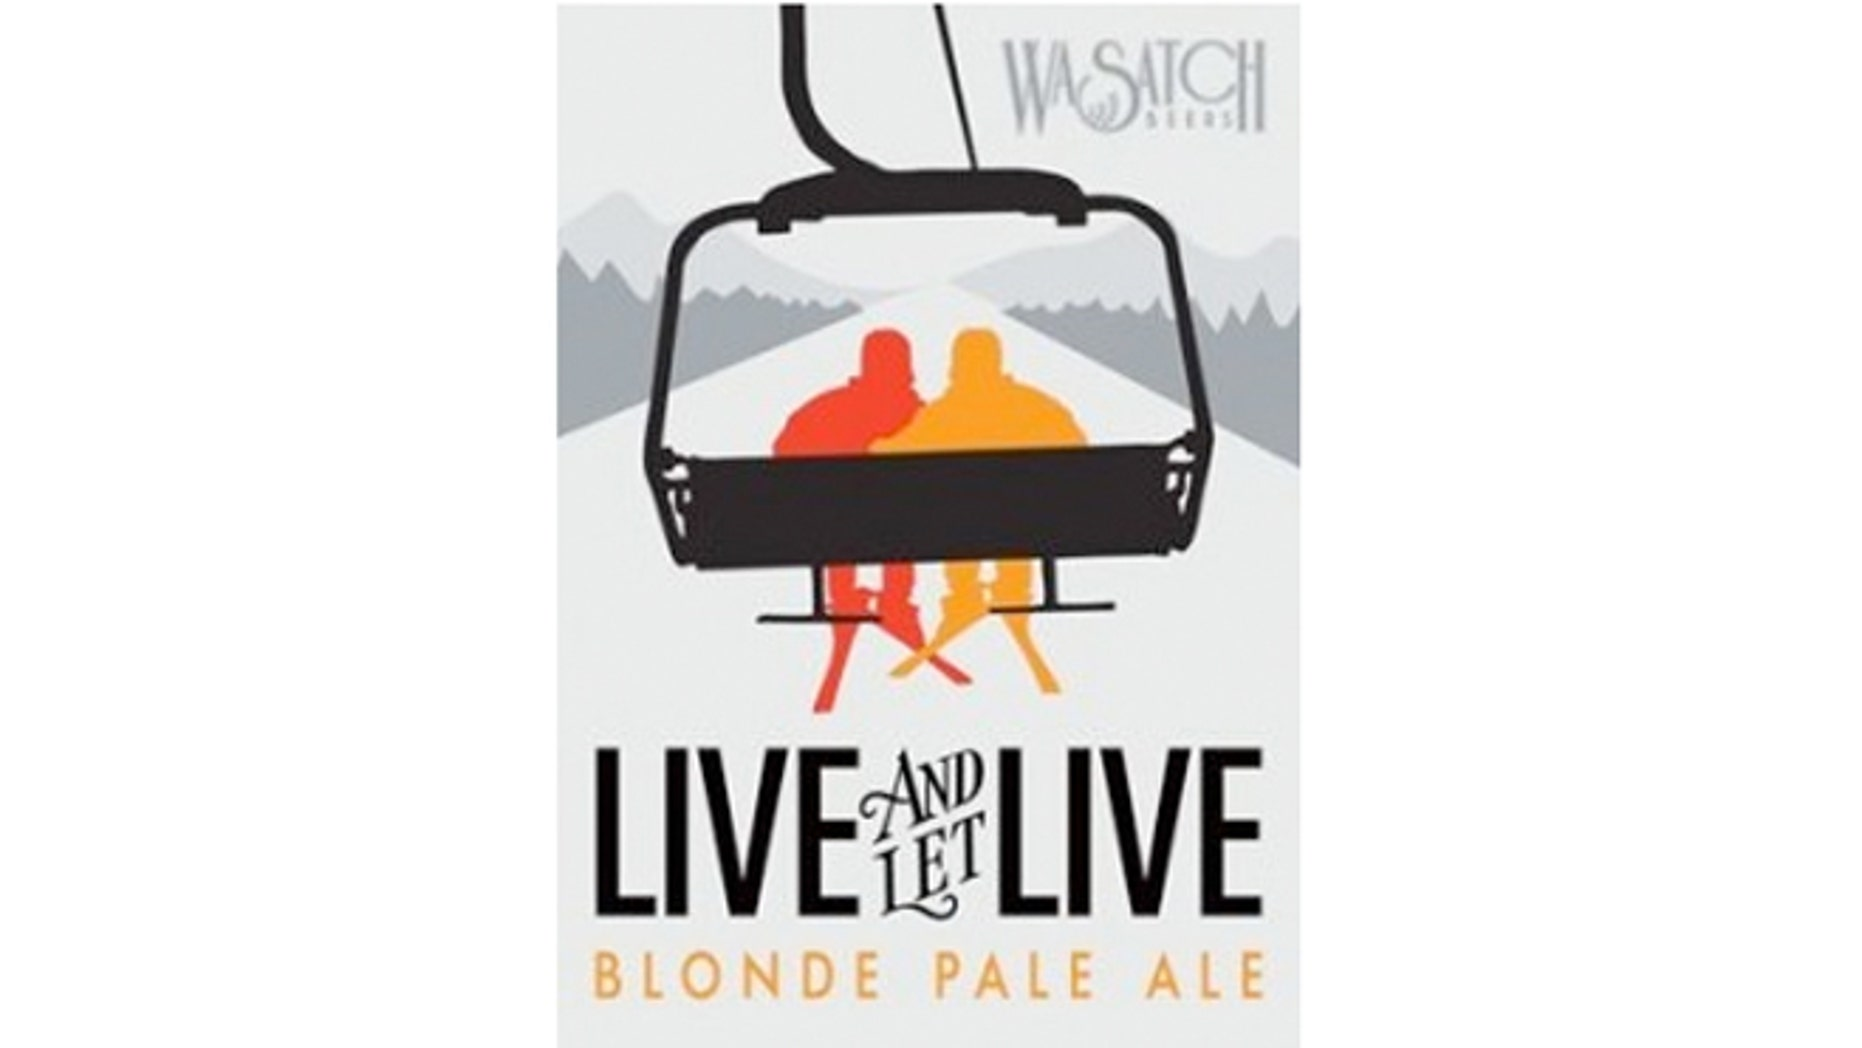 """Live and Let Live is a blonde pale ale made from """"two beautiful malts and two wonderful hops, all fermented with a pair of yeasts."""""""